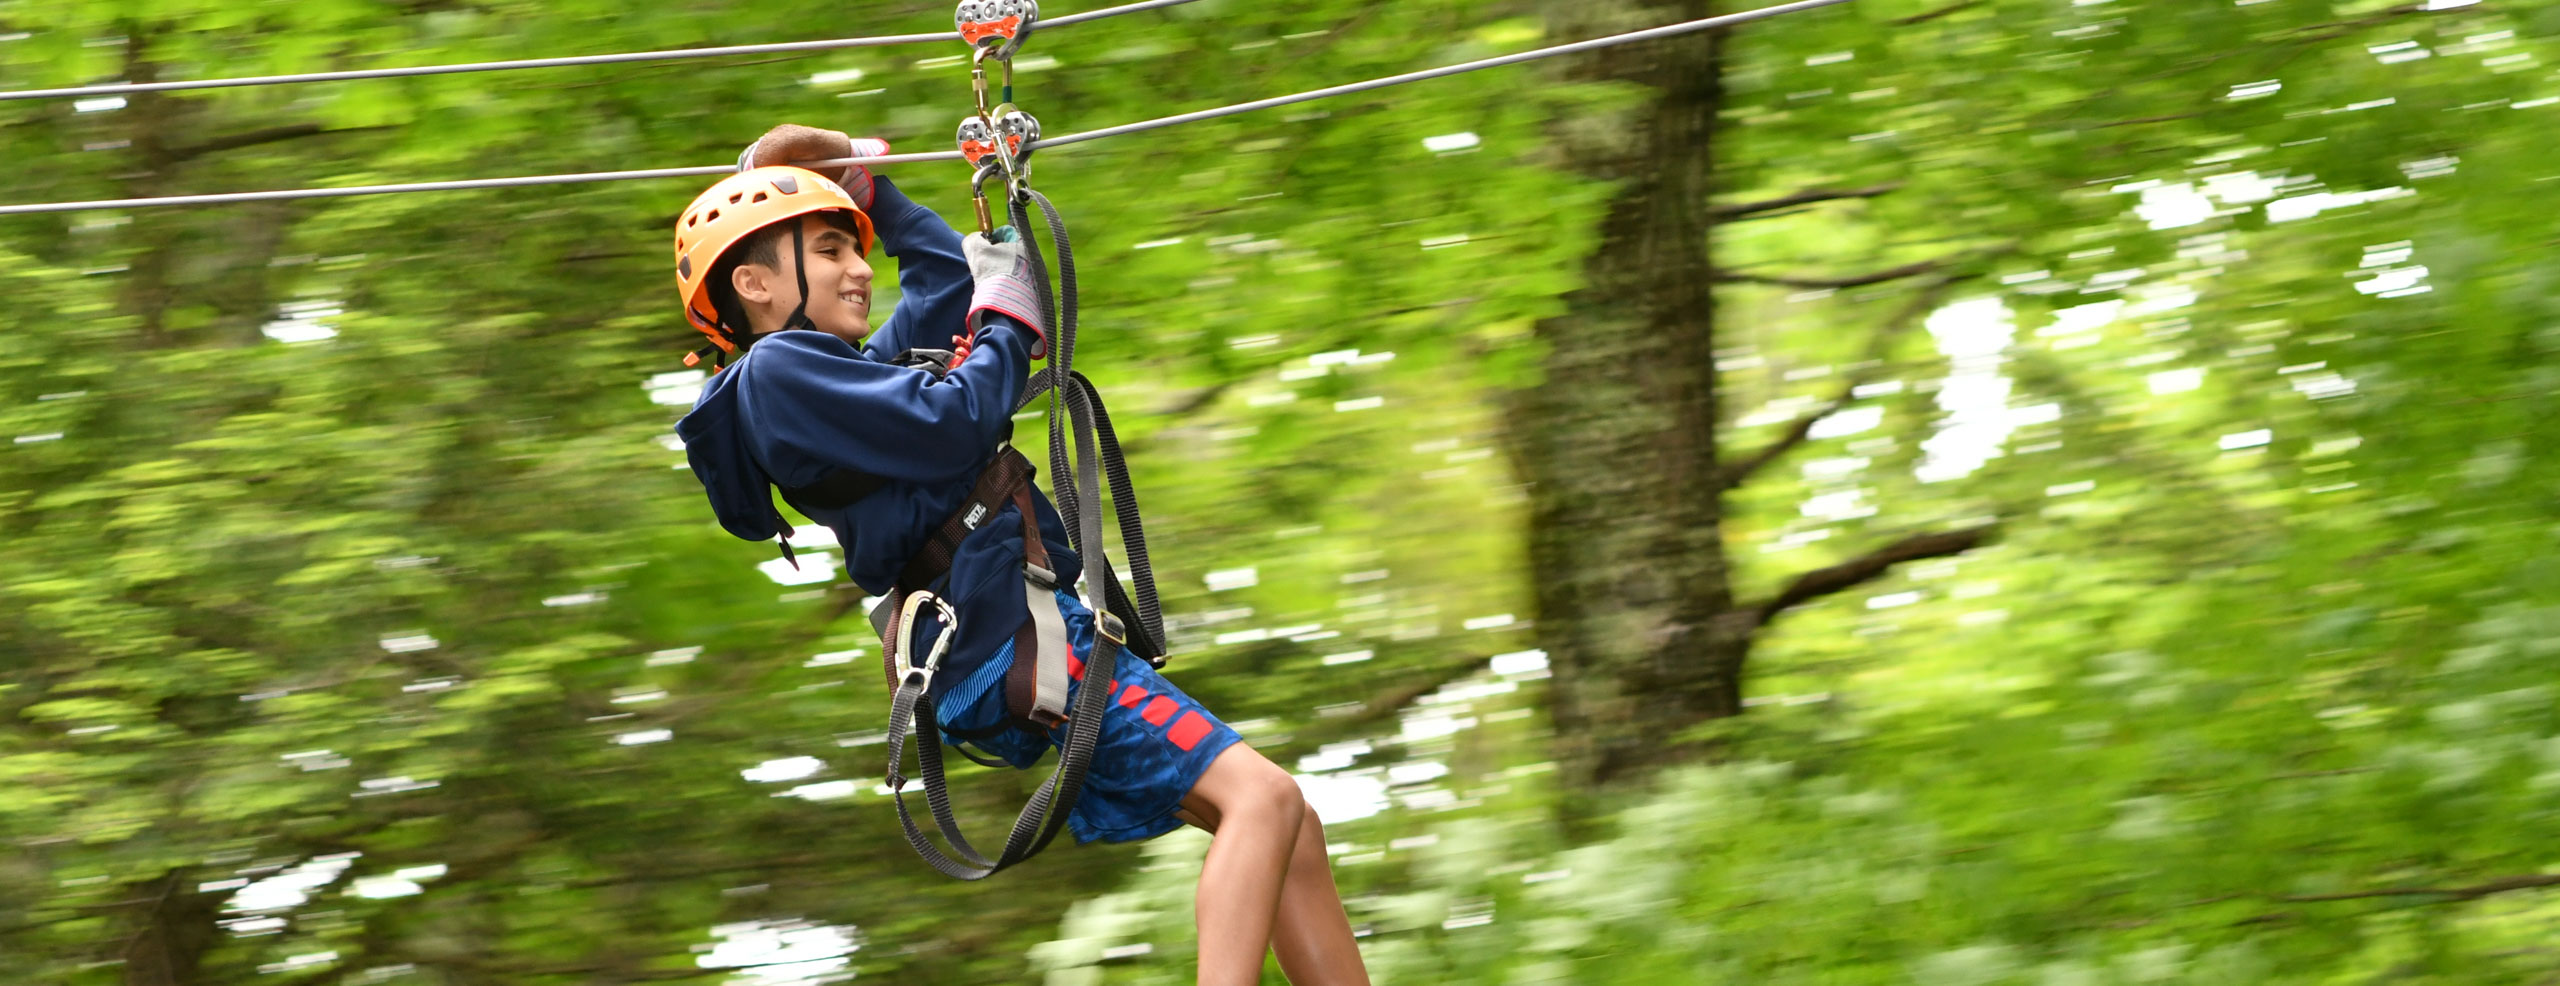 Young boy zip lining through the trees